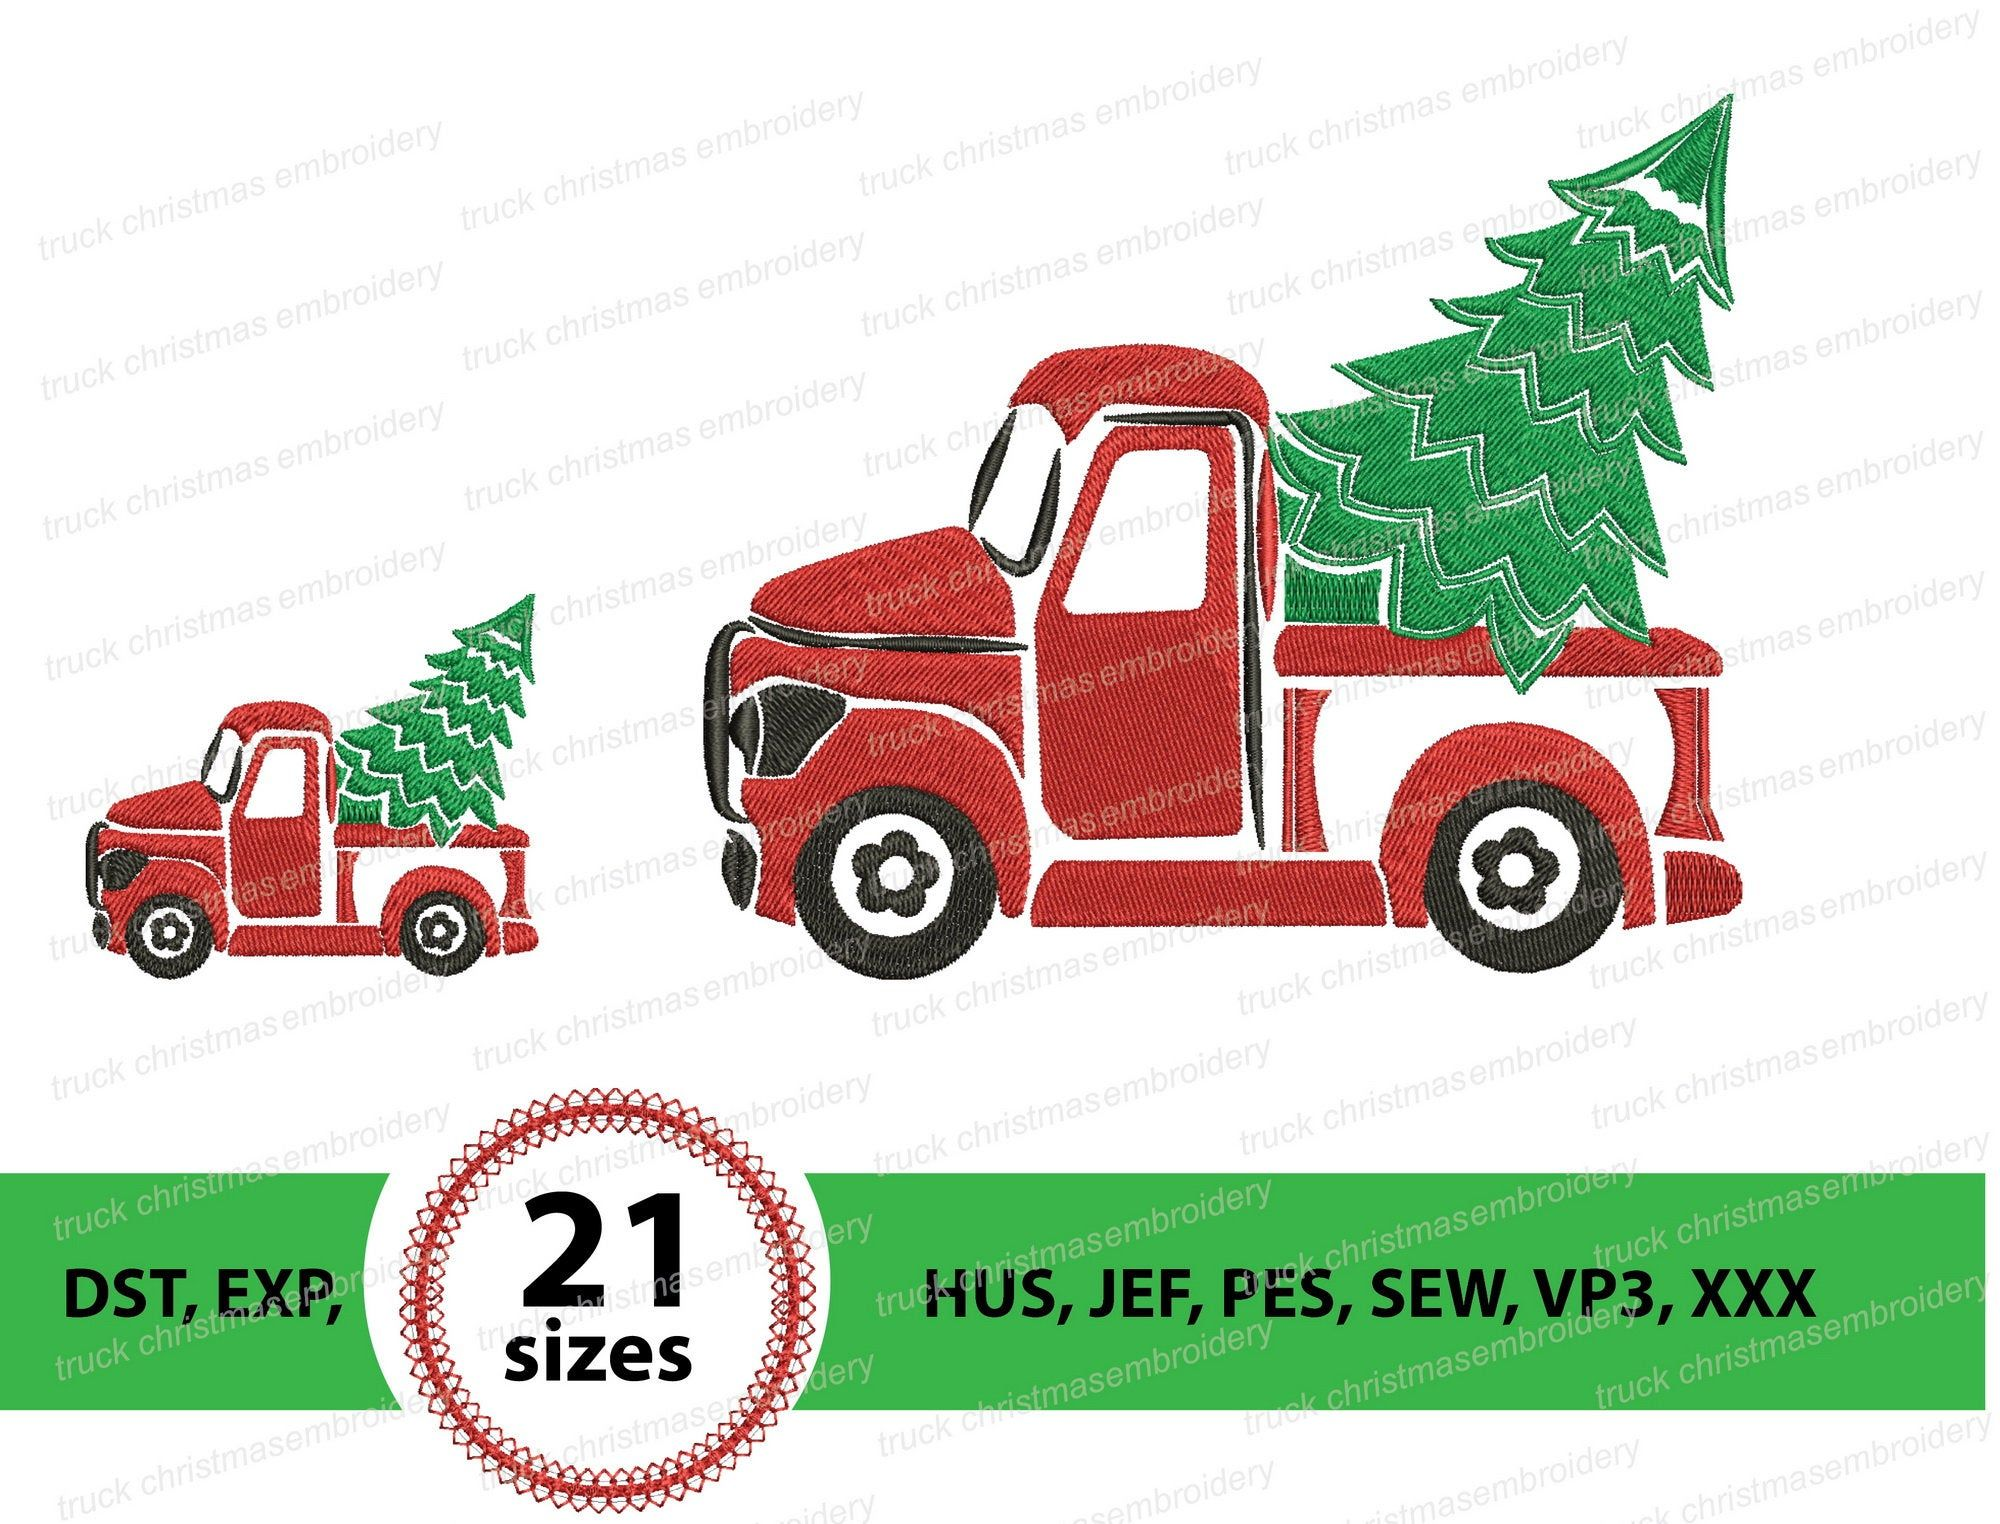 Christmas Tree Truck Machine Embroidery Design Retro Truck And Christmas Tree Embroidery Design Machine Embroidery Design Instant Download Christmas Tree Embroidery Design Christmas Tree Truck Machine Embroidery Designs